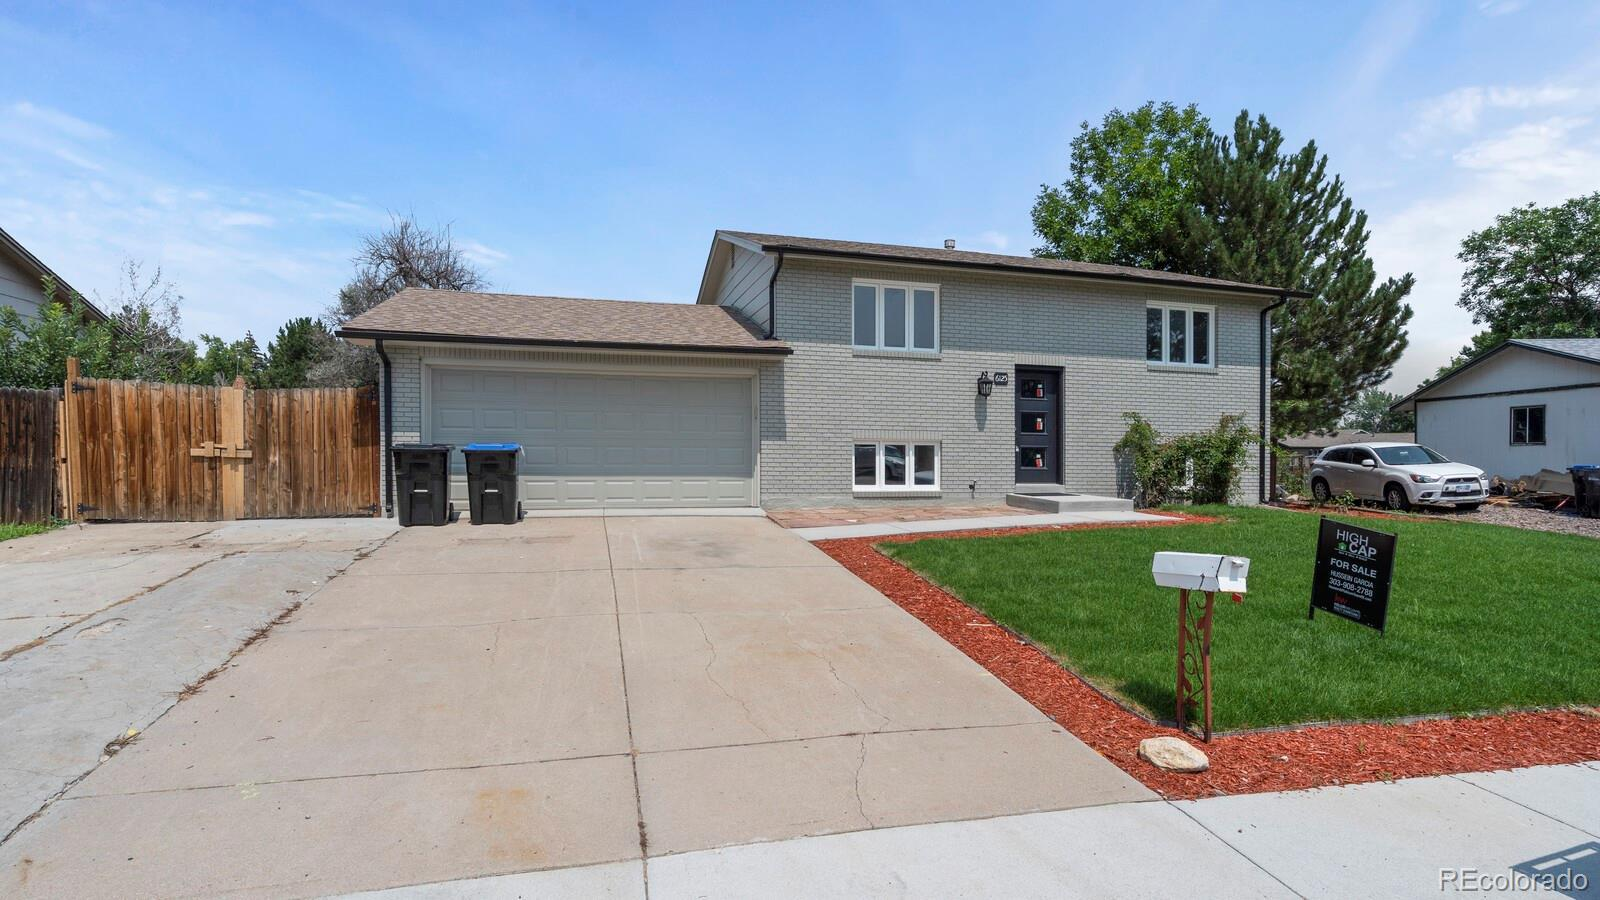 6125 W 78th Place, Arvada, CO 80003 - #: 1609721